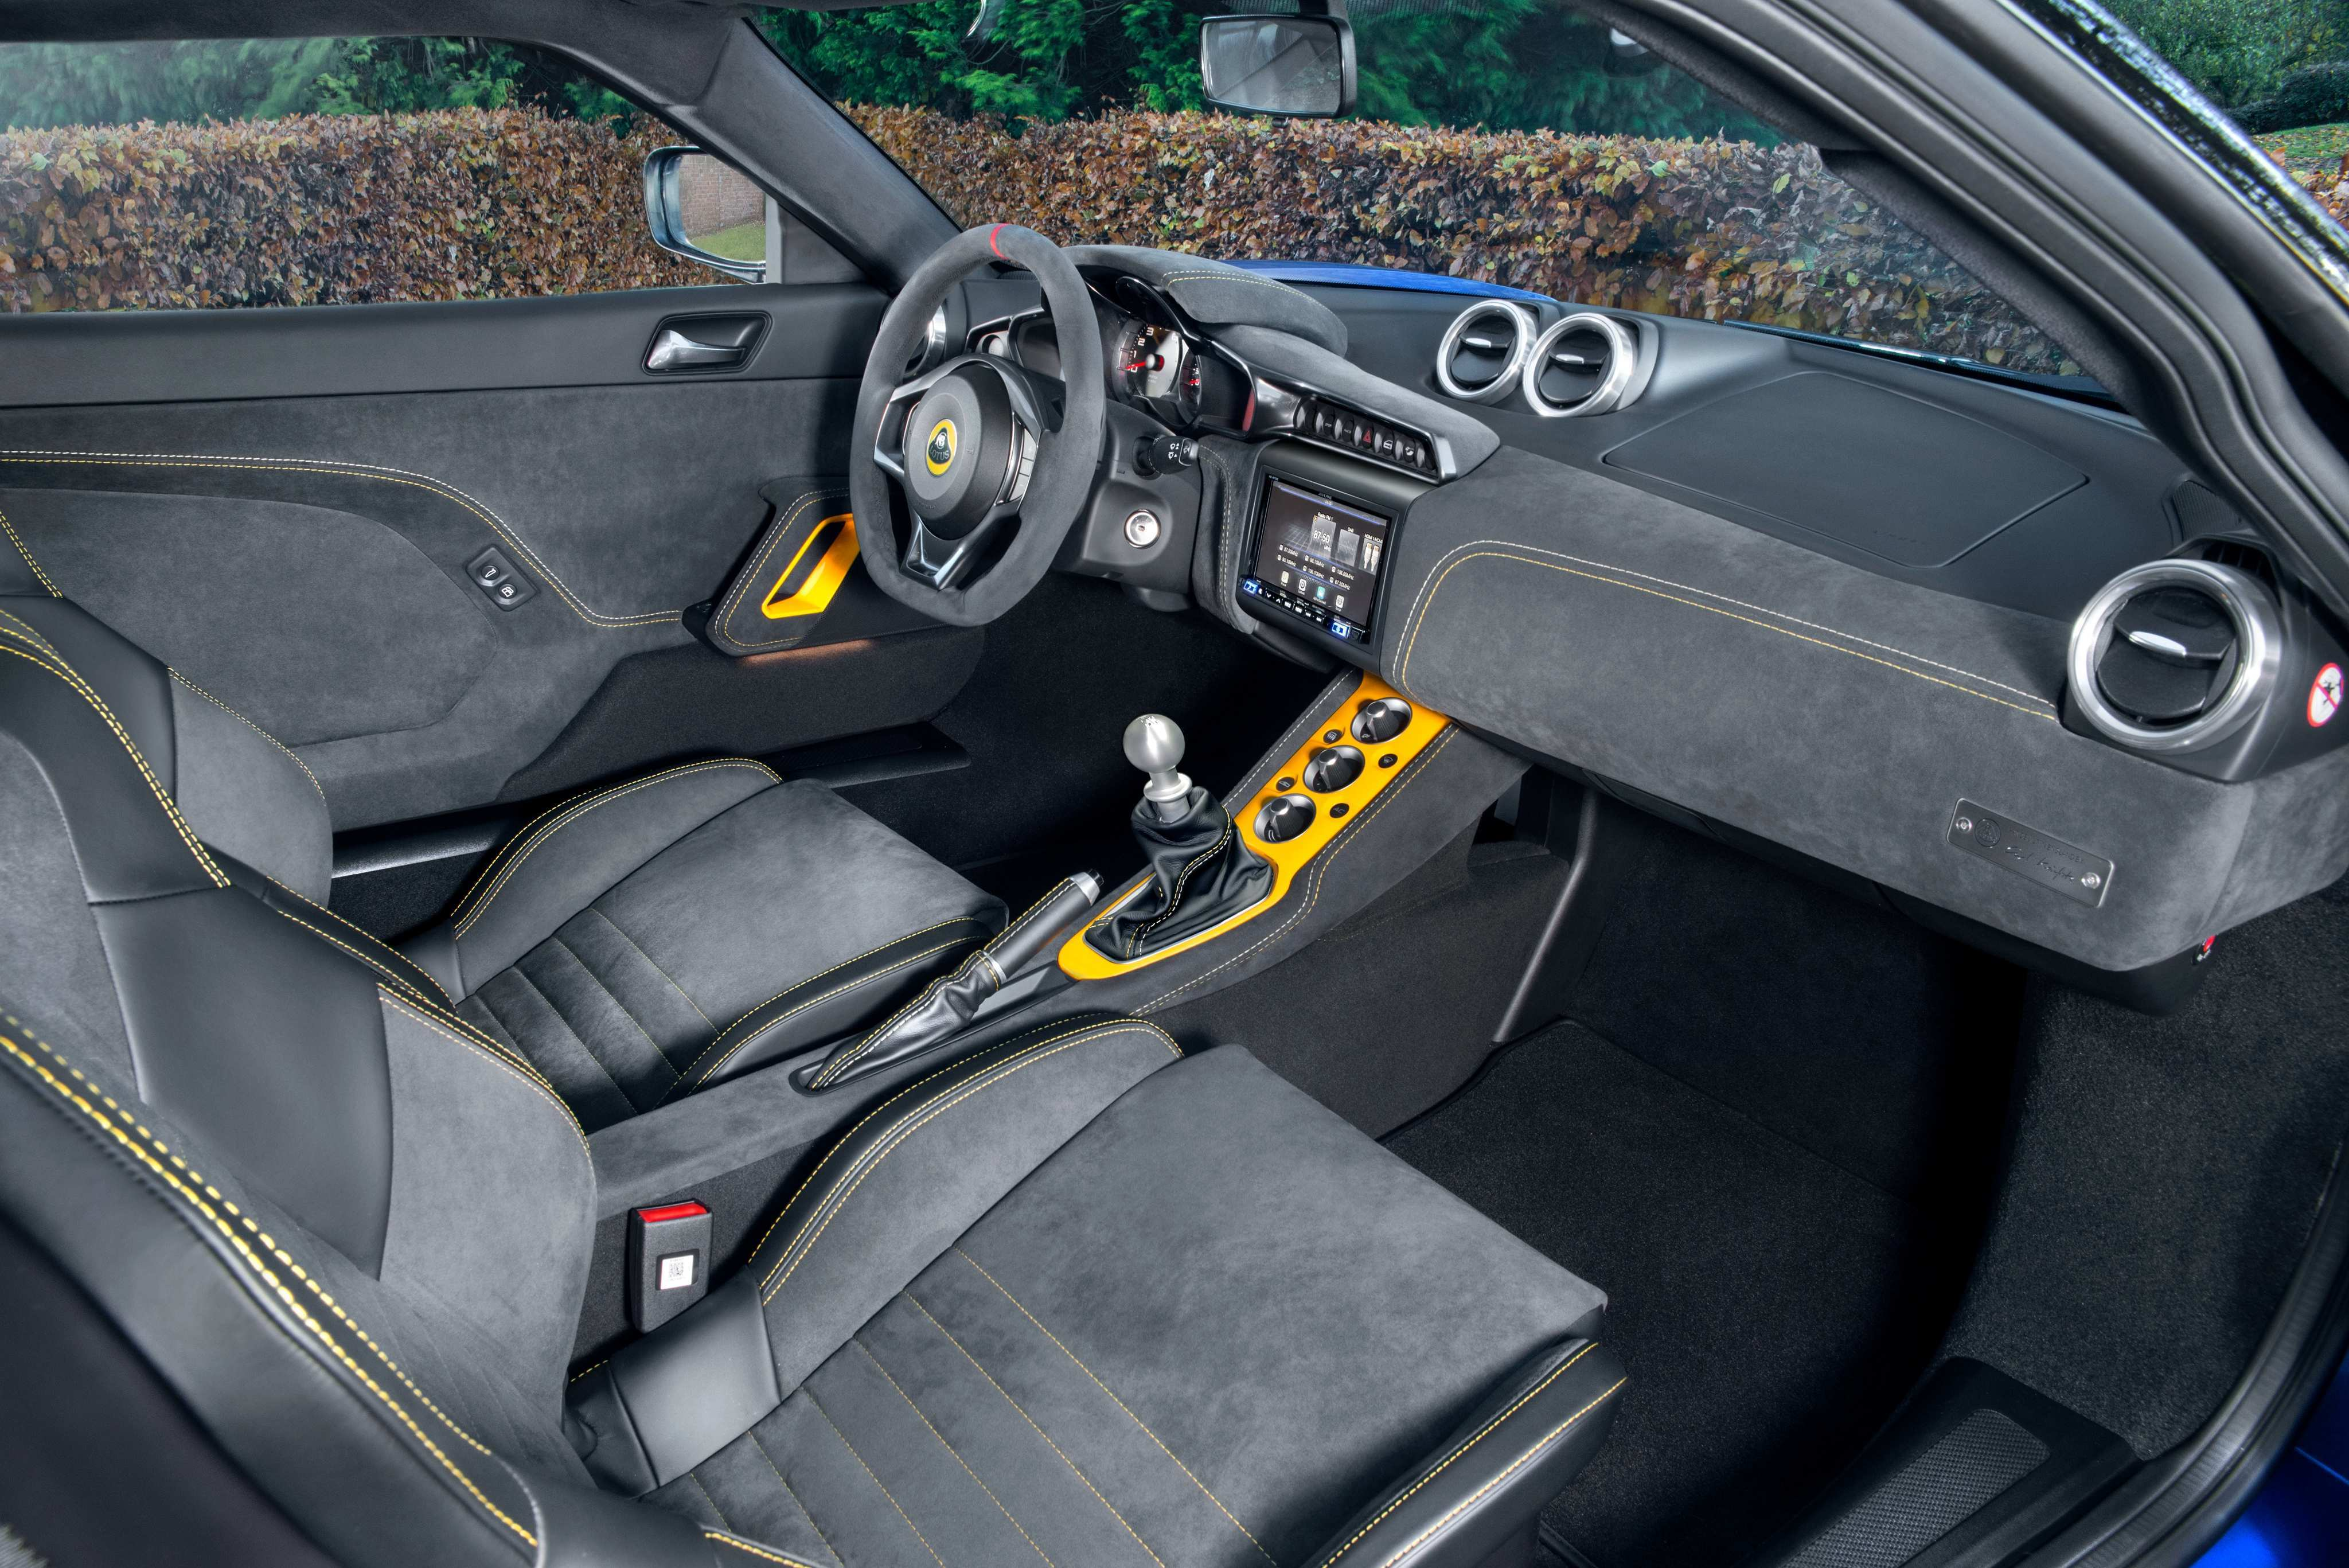 73 New Lotus Evora Interior Images for Lotus Evora Interior